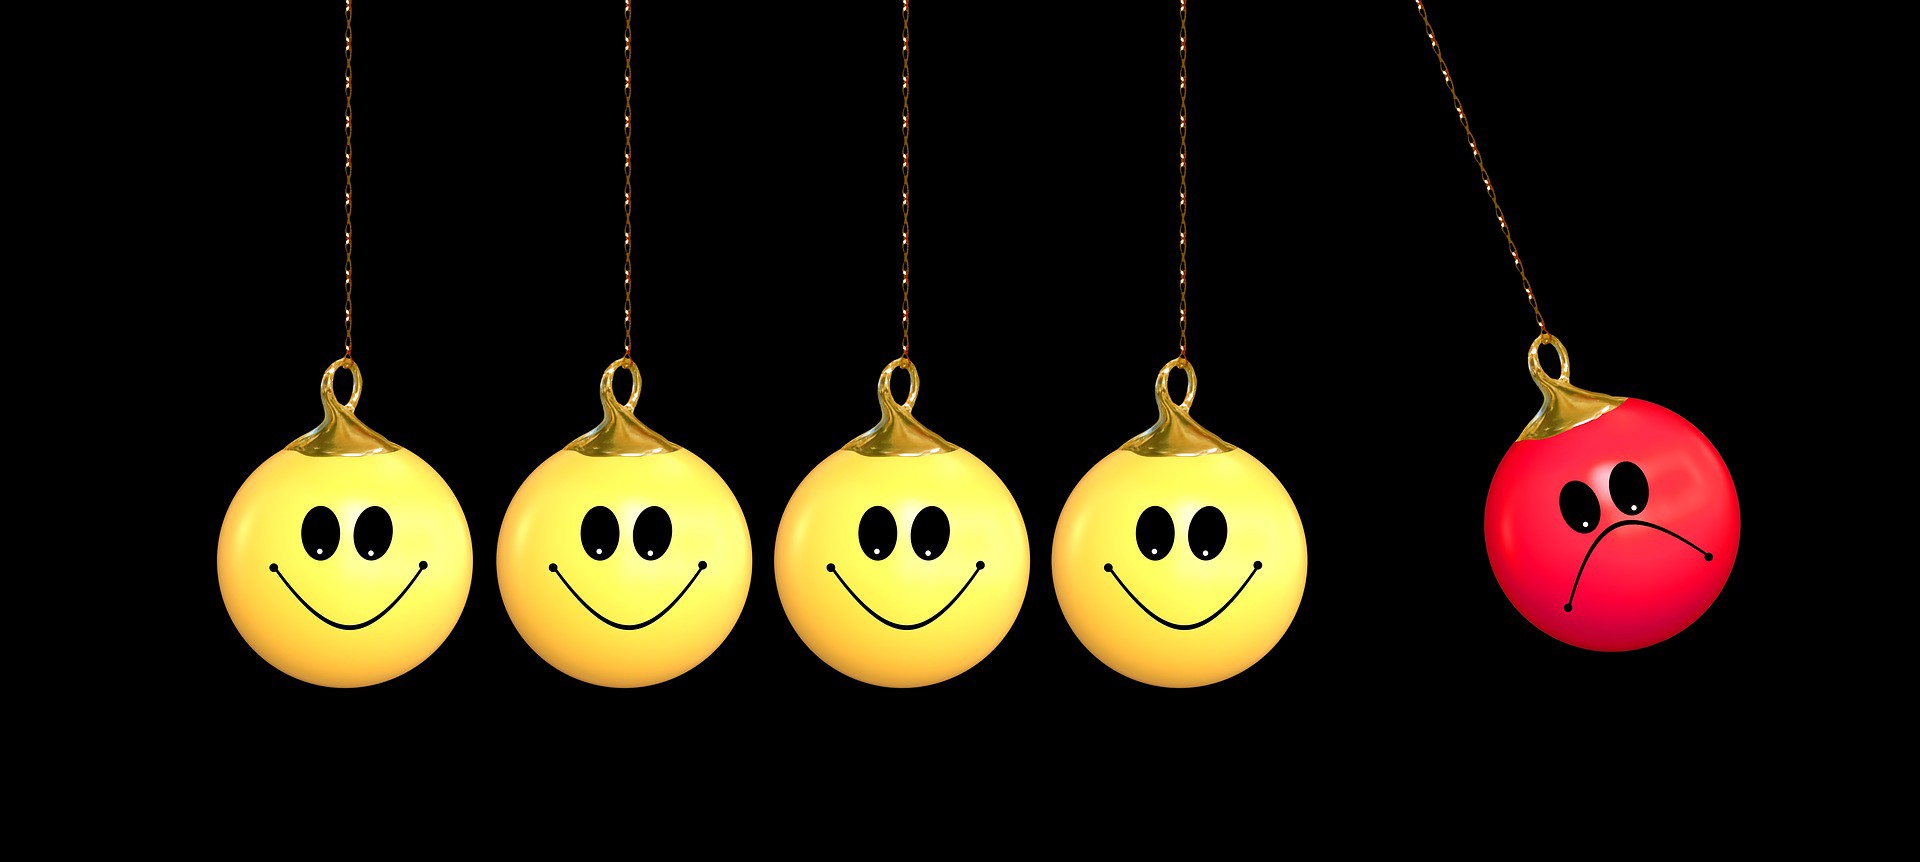 Four yellow smiley faces and one red sad face